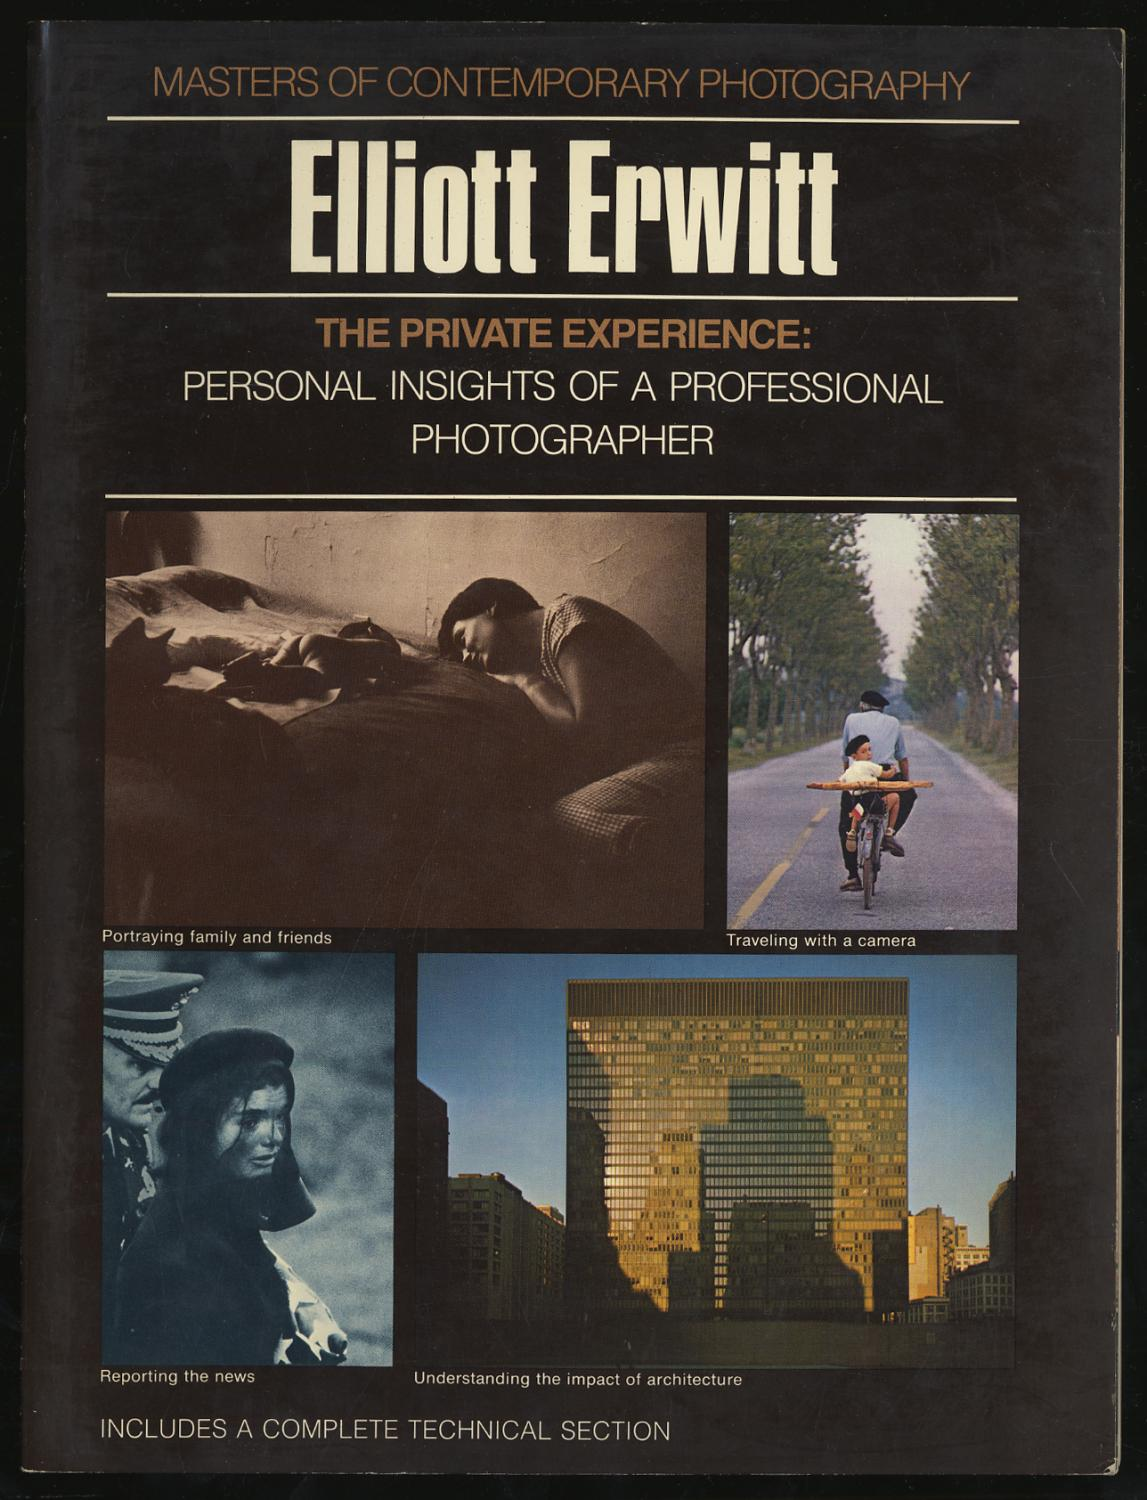 The Private Experience: Personal Insights of a: ERWITT, Elliott